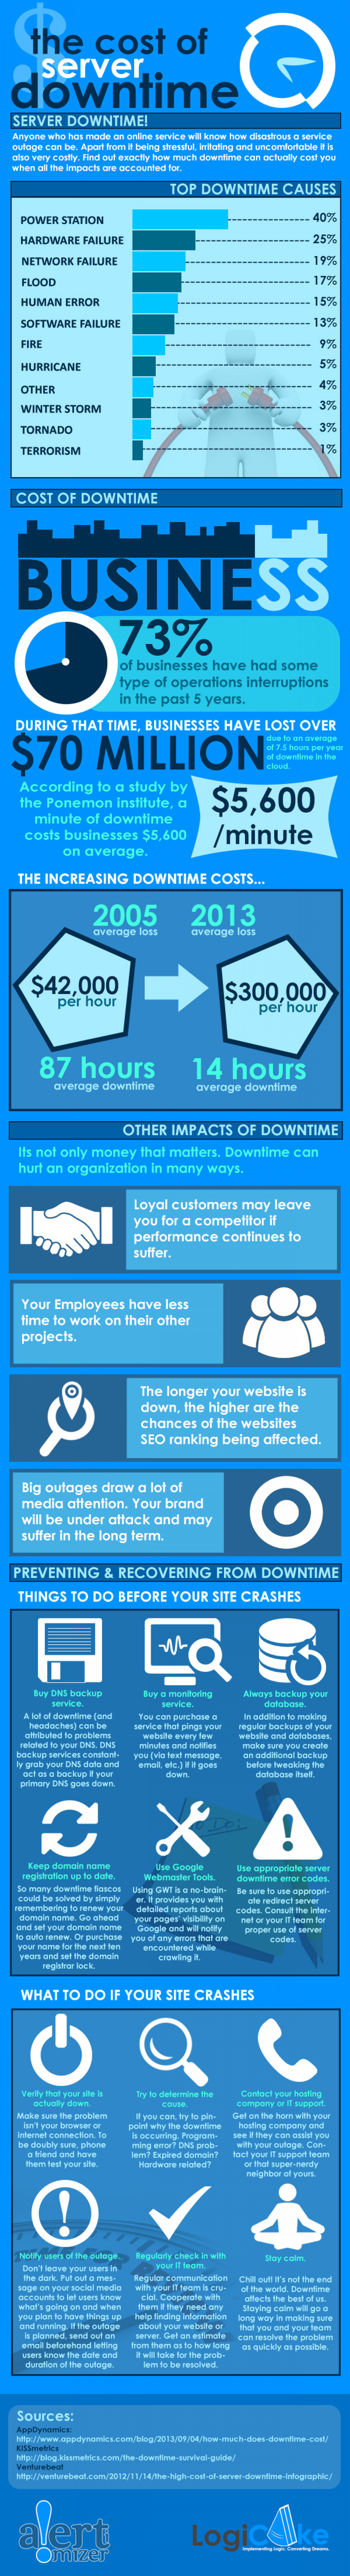 The Cost of Server Downtime! Infographic